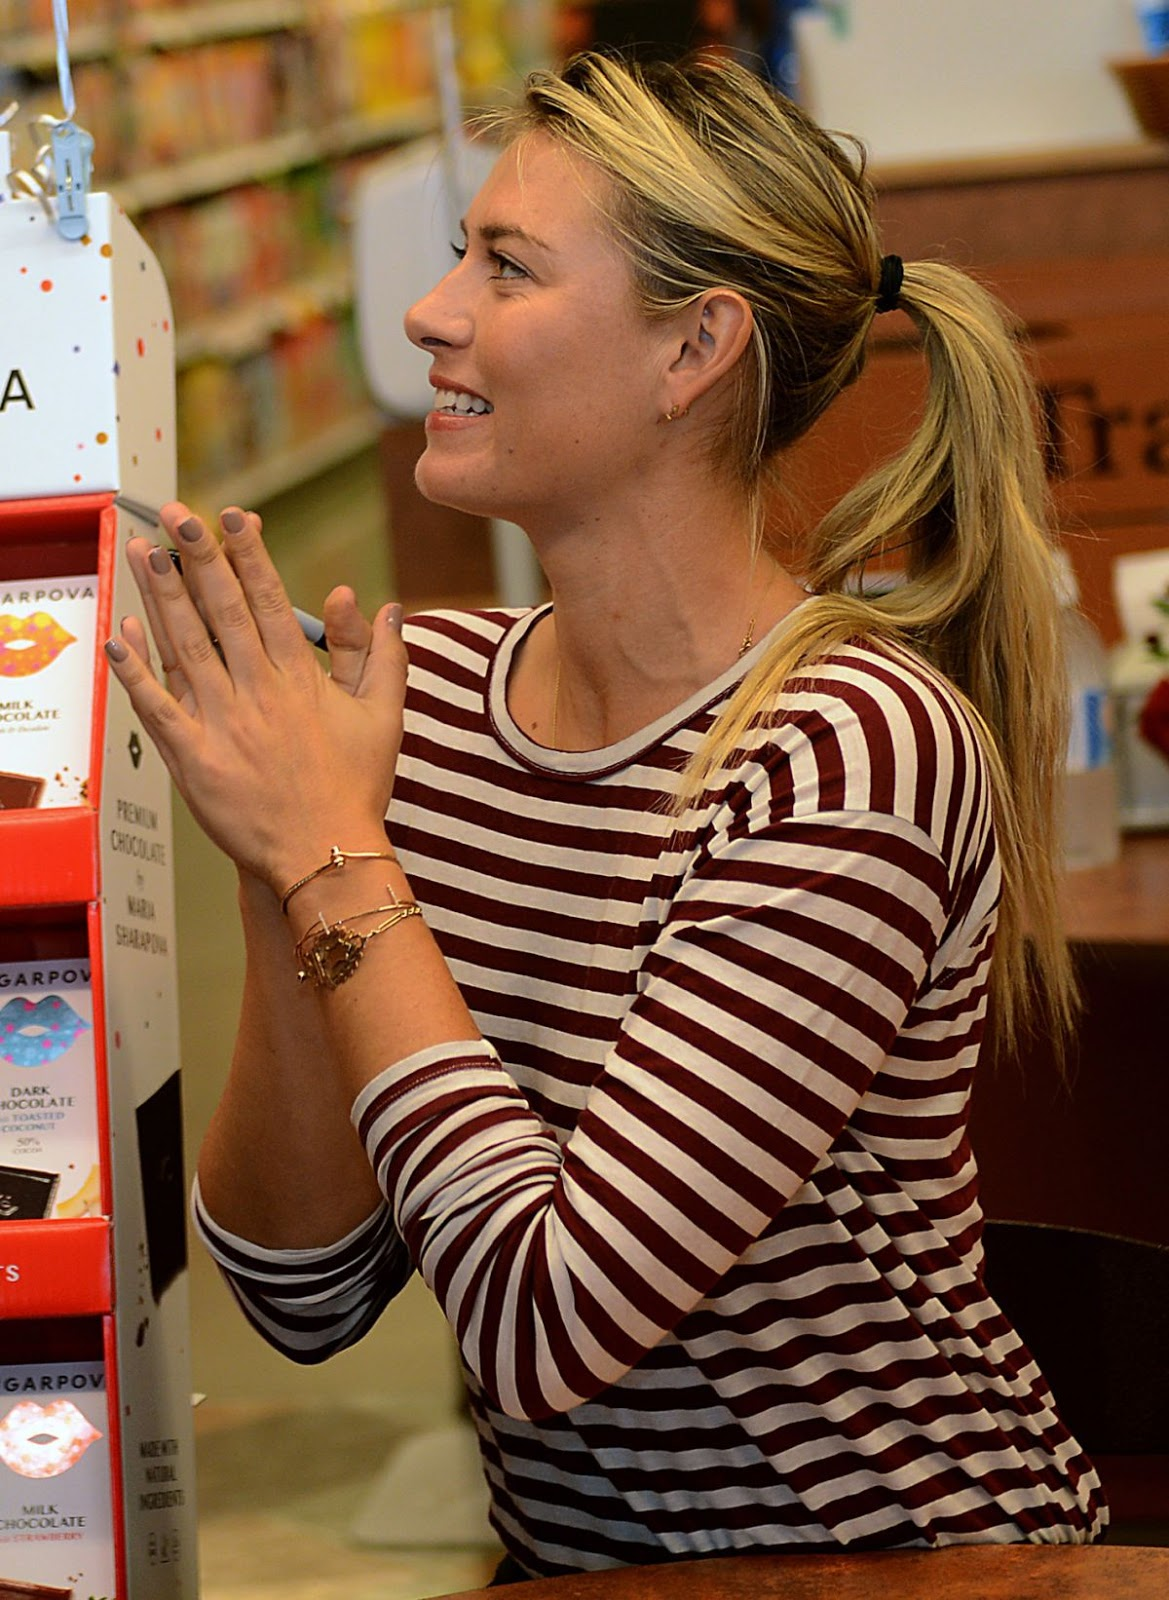 Maria Sharapova Promotes Her Sugarpova Candy in Franklin